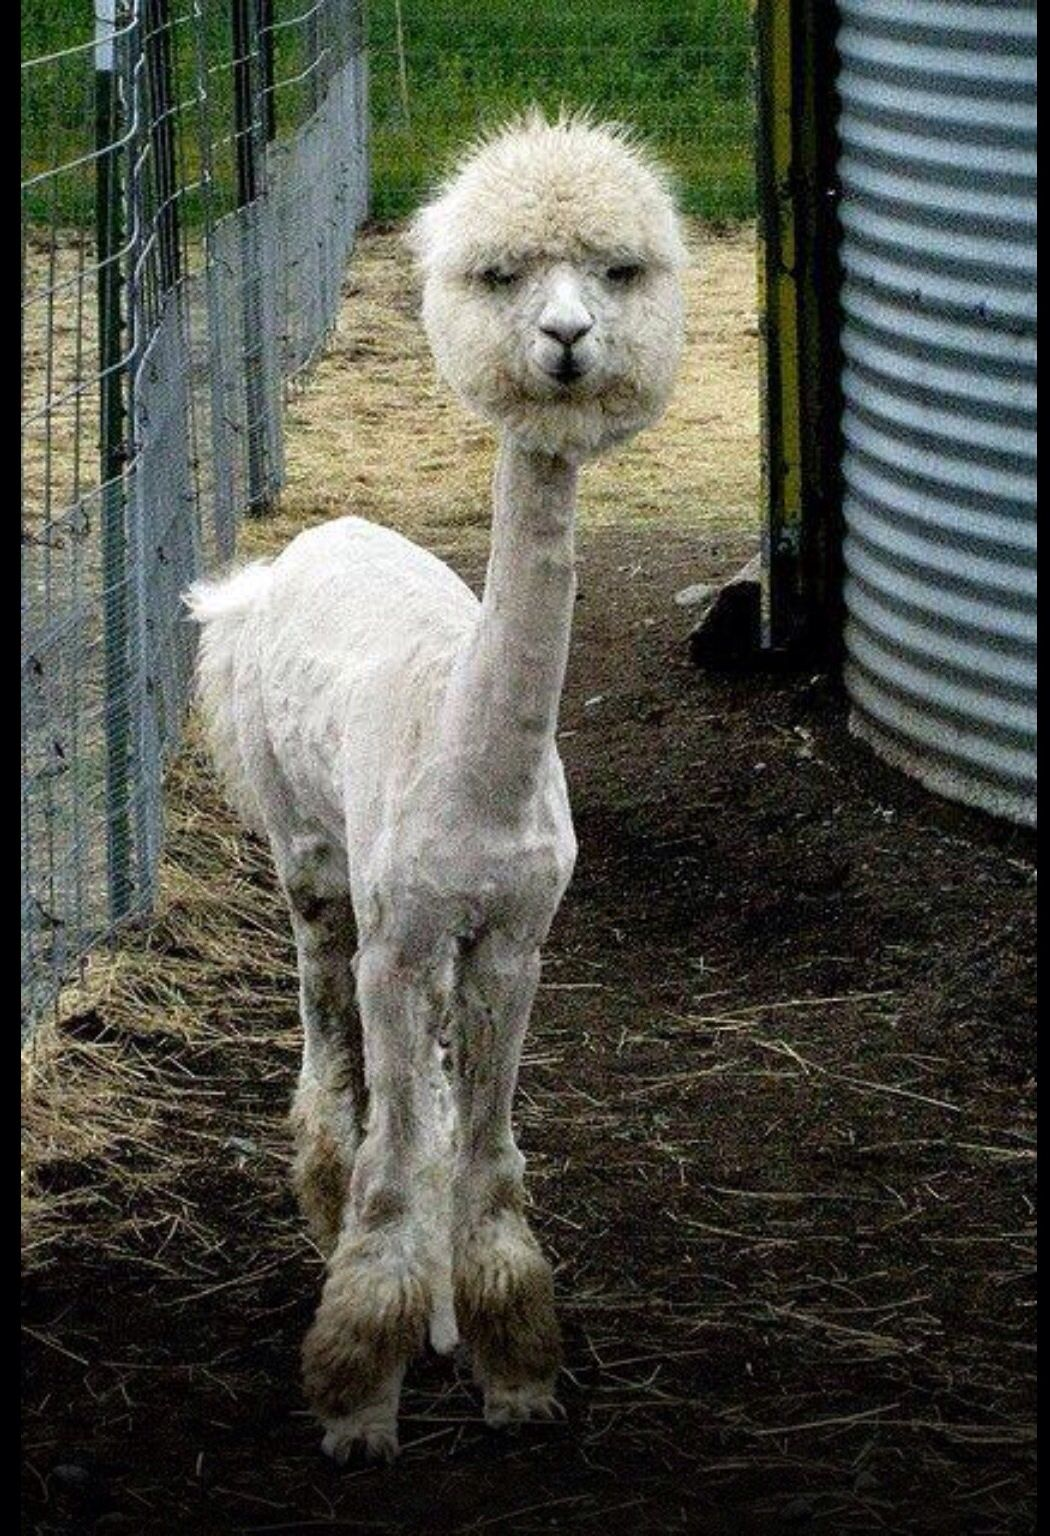 One funny looking animal! | Great animal shots | Pinterest ...